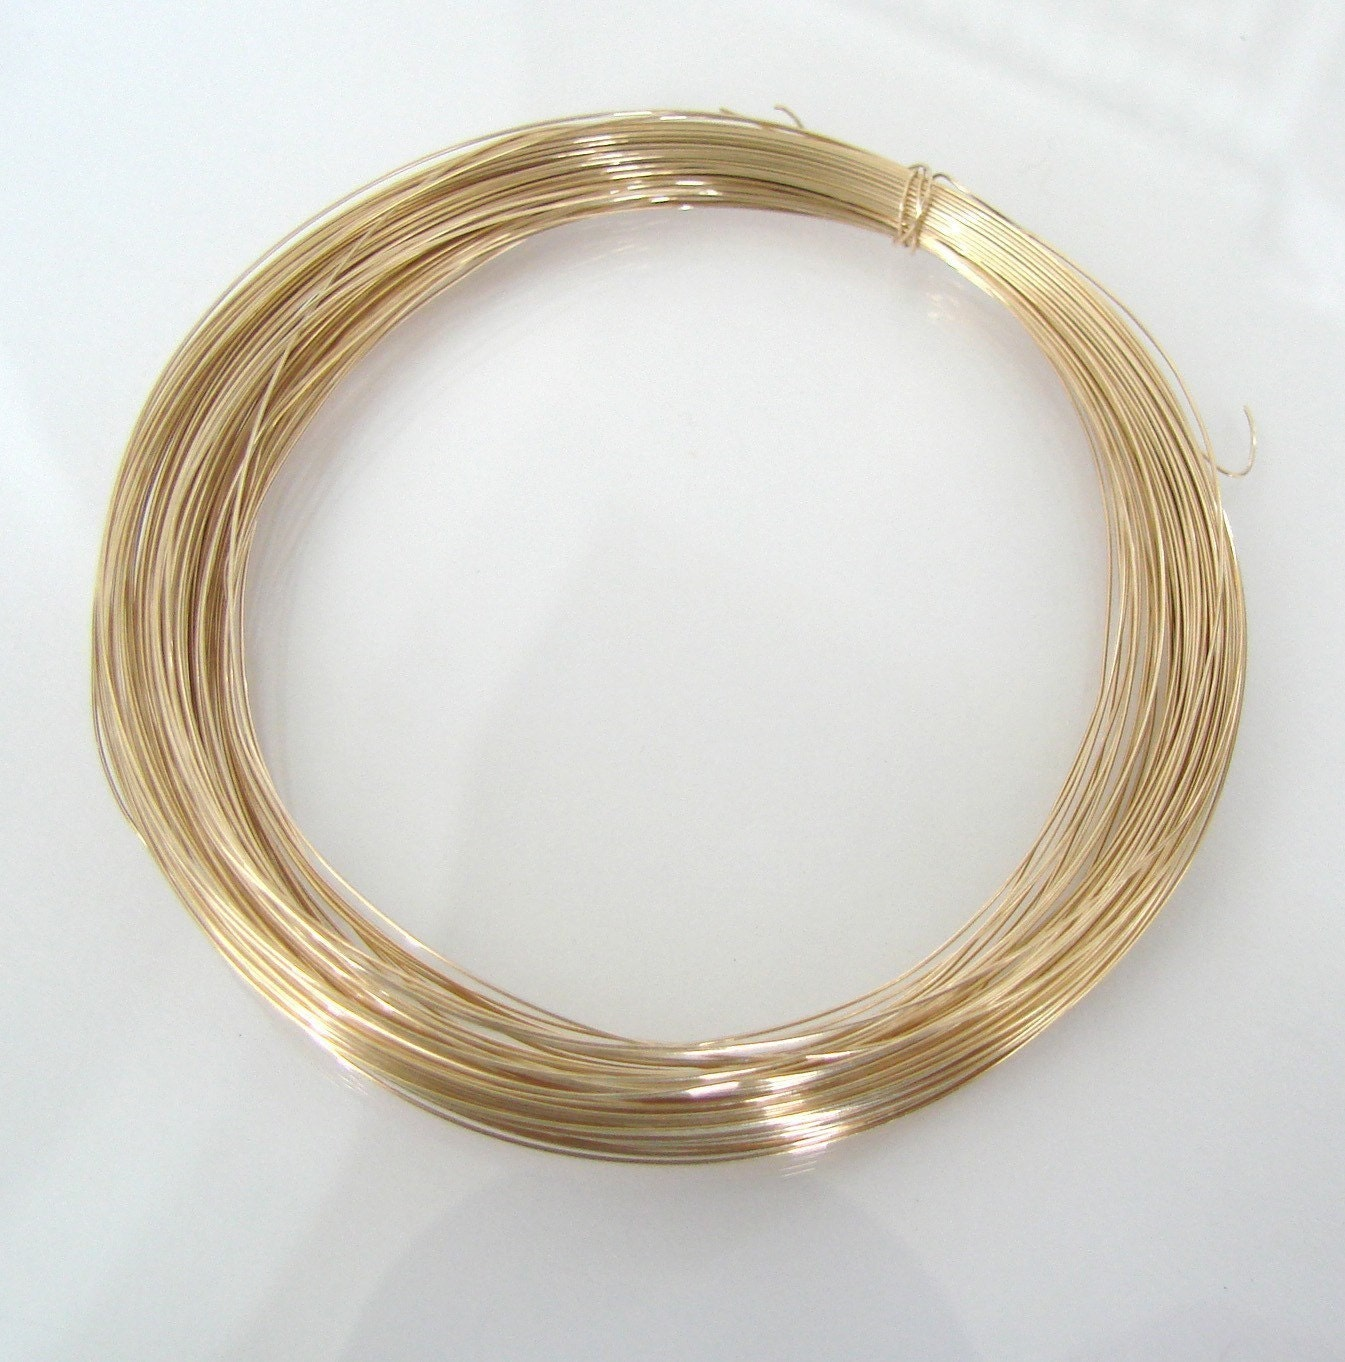 14k solid gold 28g wire for jewelry making 1 foot